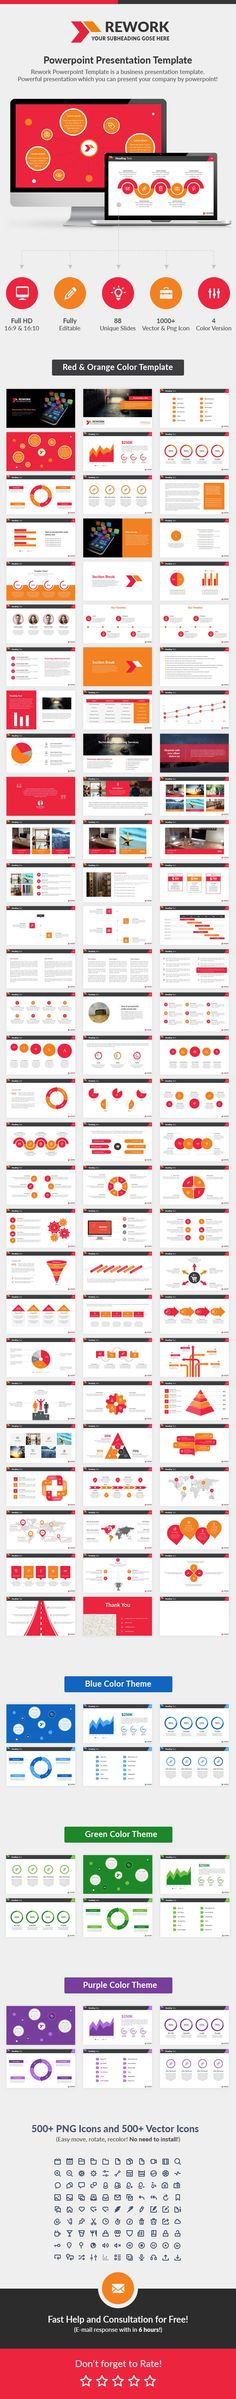 rework instructions template - business report powerpoint template powerpoint templates